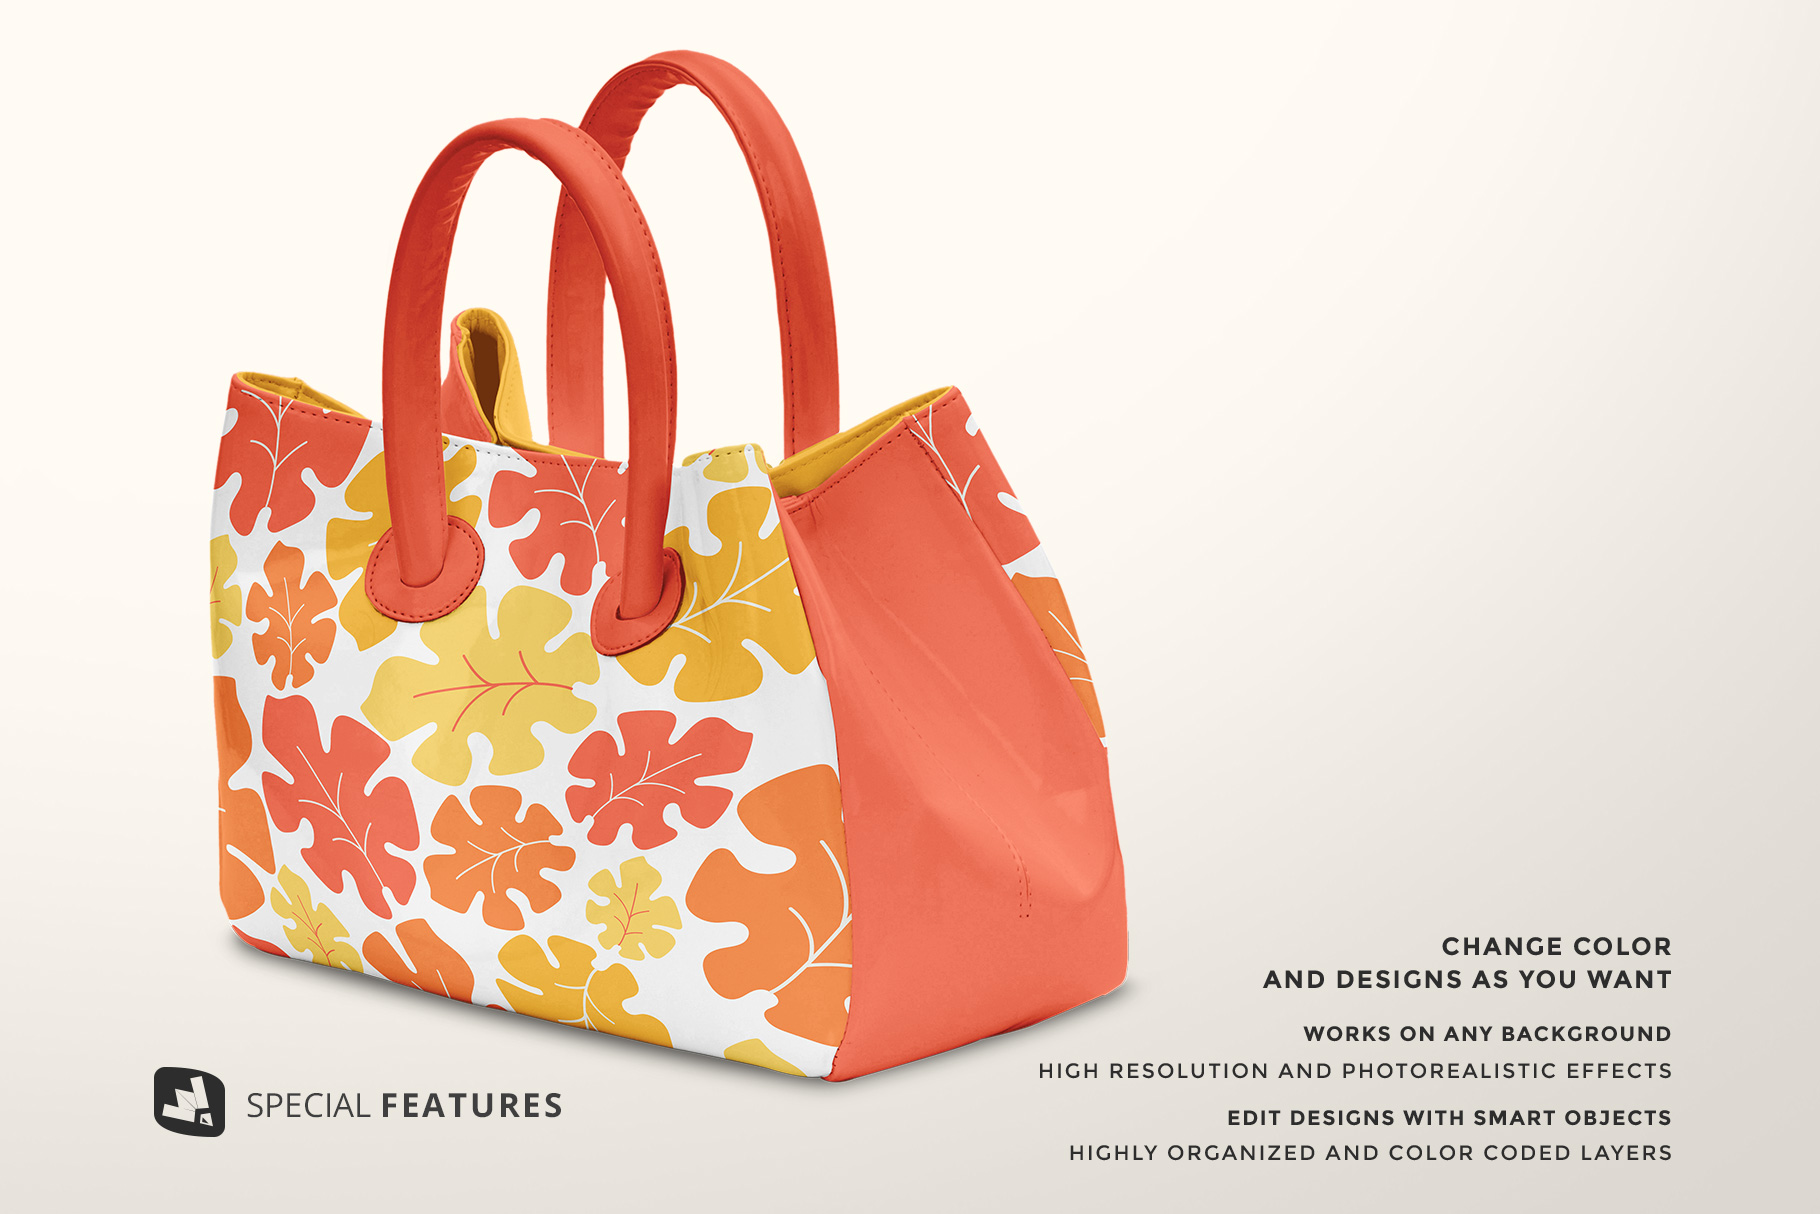 special features of the female handbag mockup